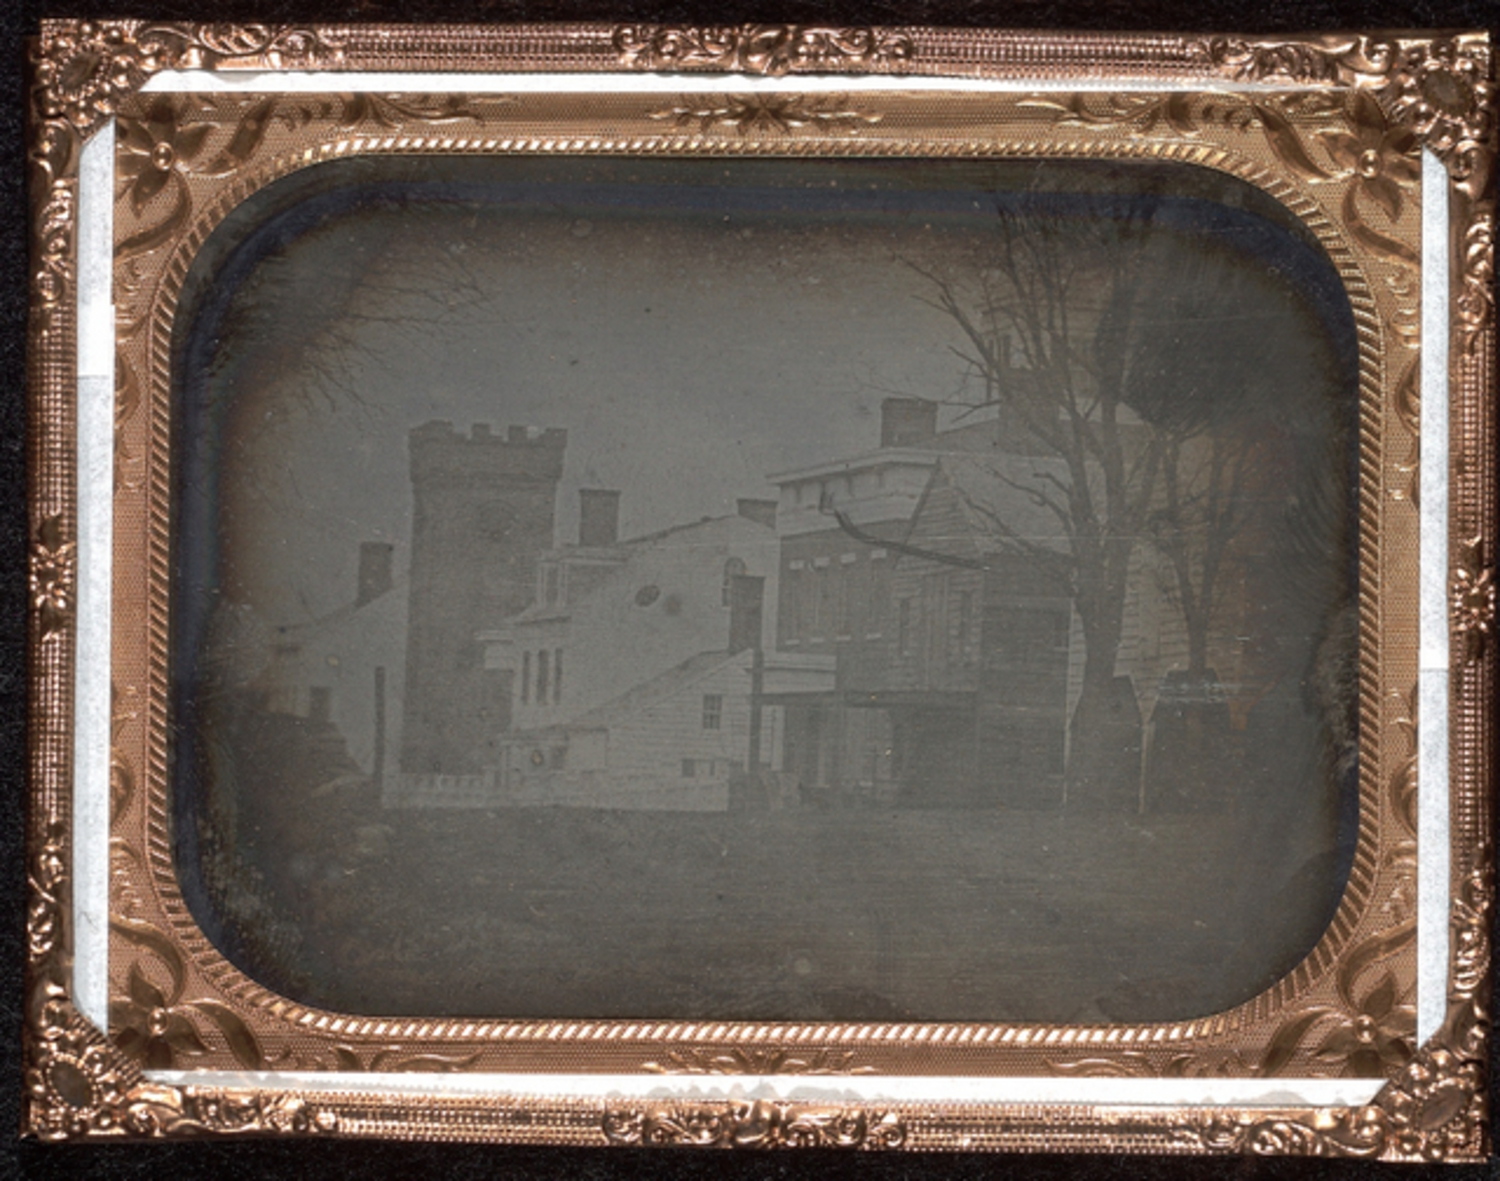 A daguerrotype of the Unitarian Church on the east side of Broadway across Waverly Place. Fall 1839 or winter 1840, by Samuel F.B. Morse and John William Draper